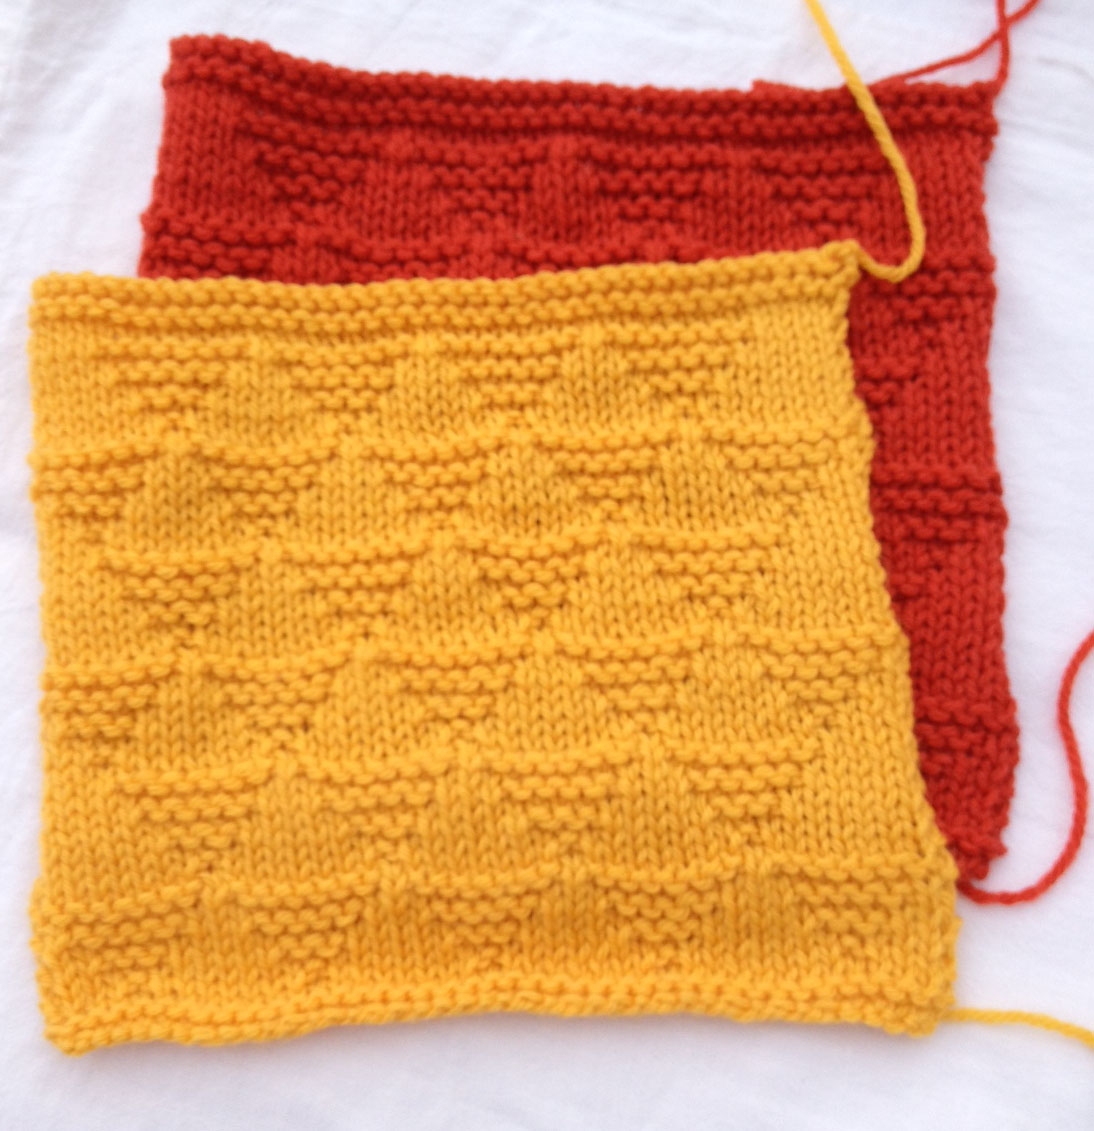 Afghan knit-a-long Knitting With Rowan - Part 5